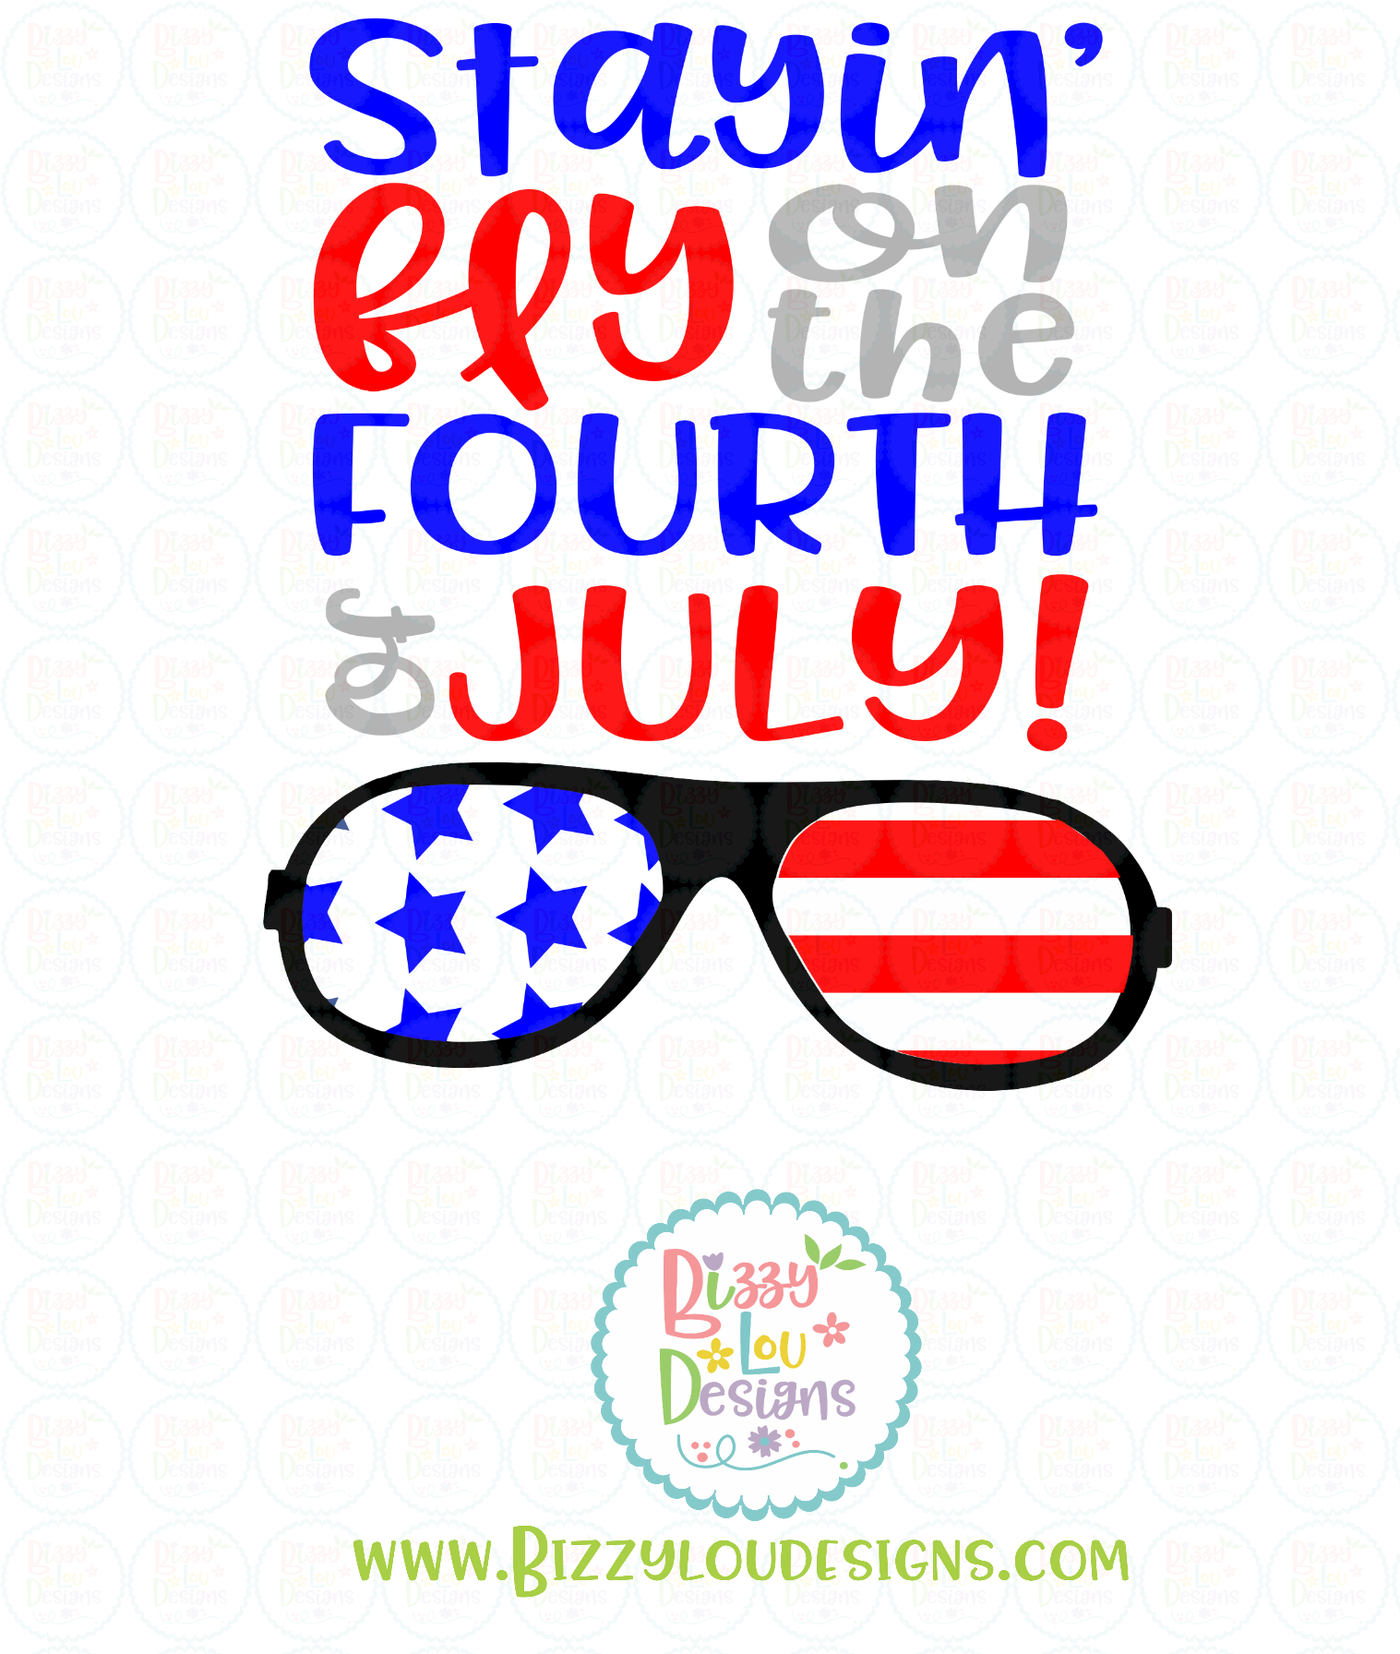 Stayin Fly On The Fourth Of July Svg Eps Dxf Png File By Bizzy